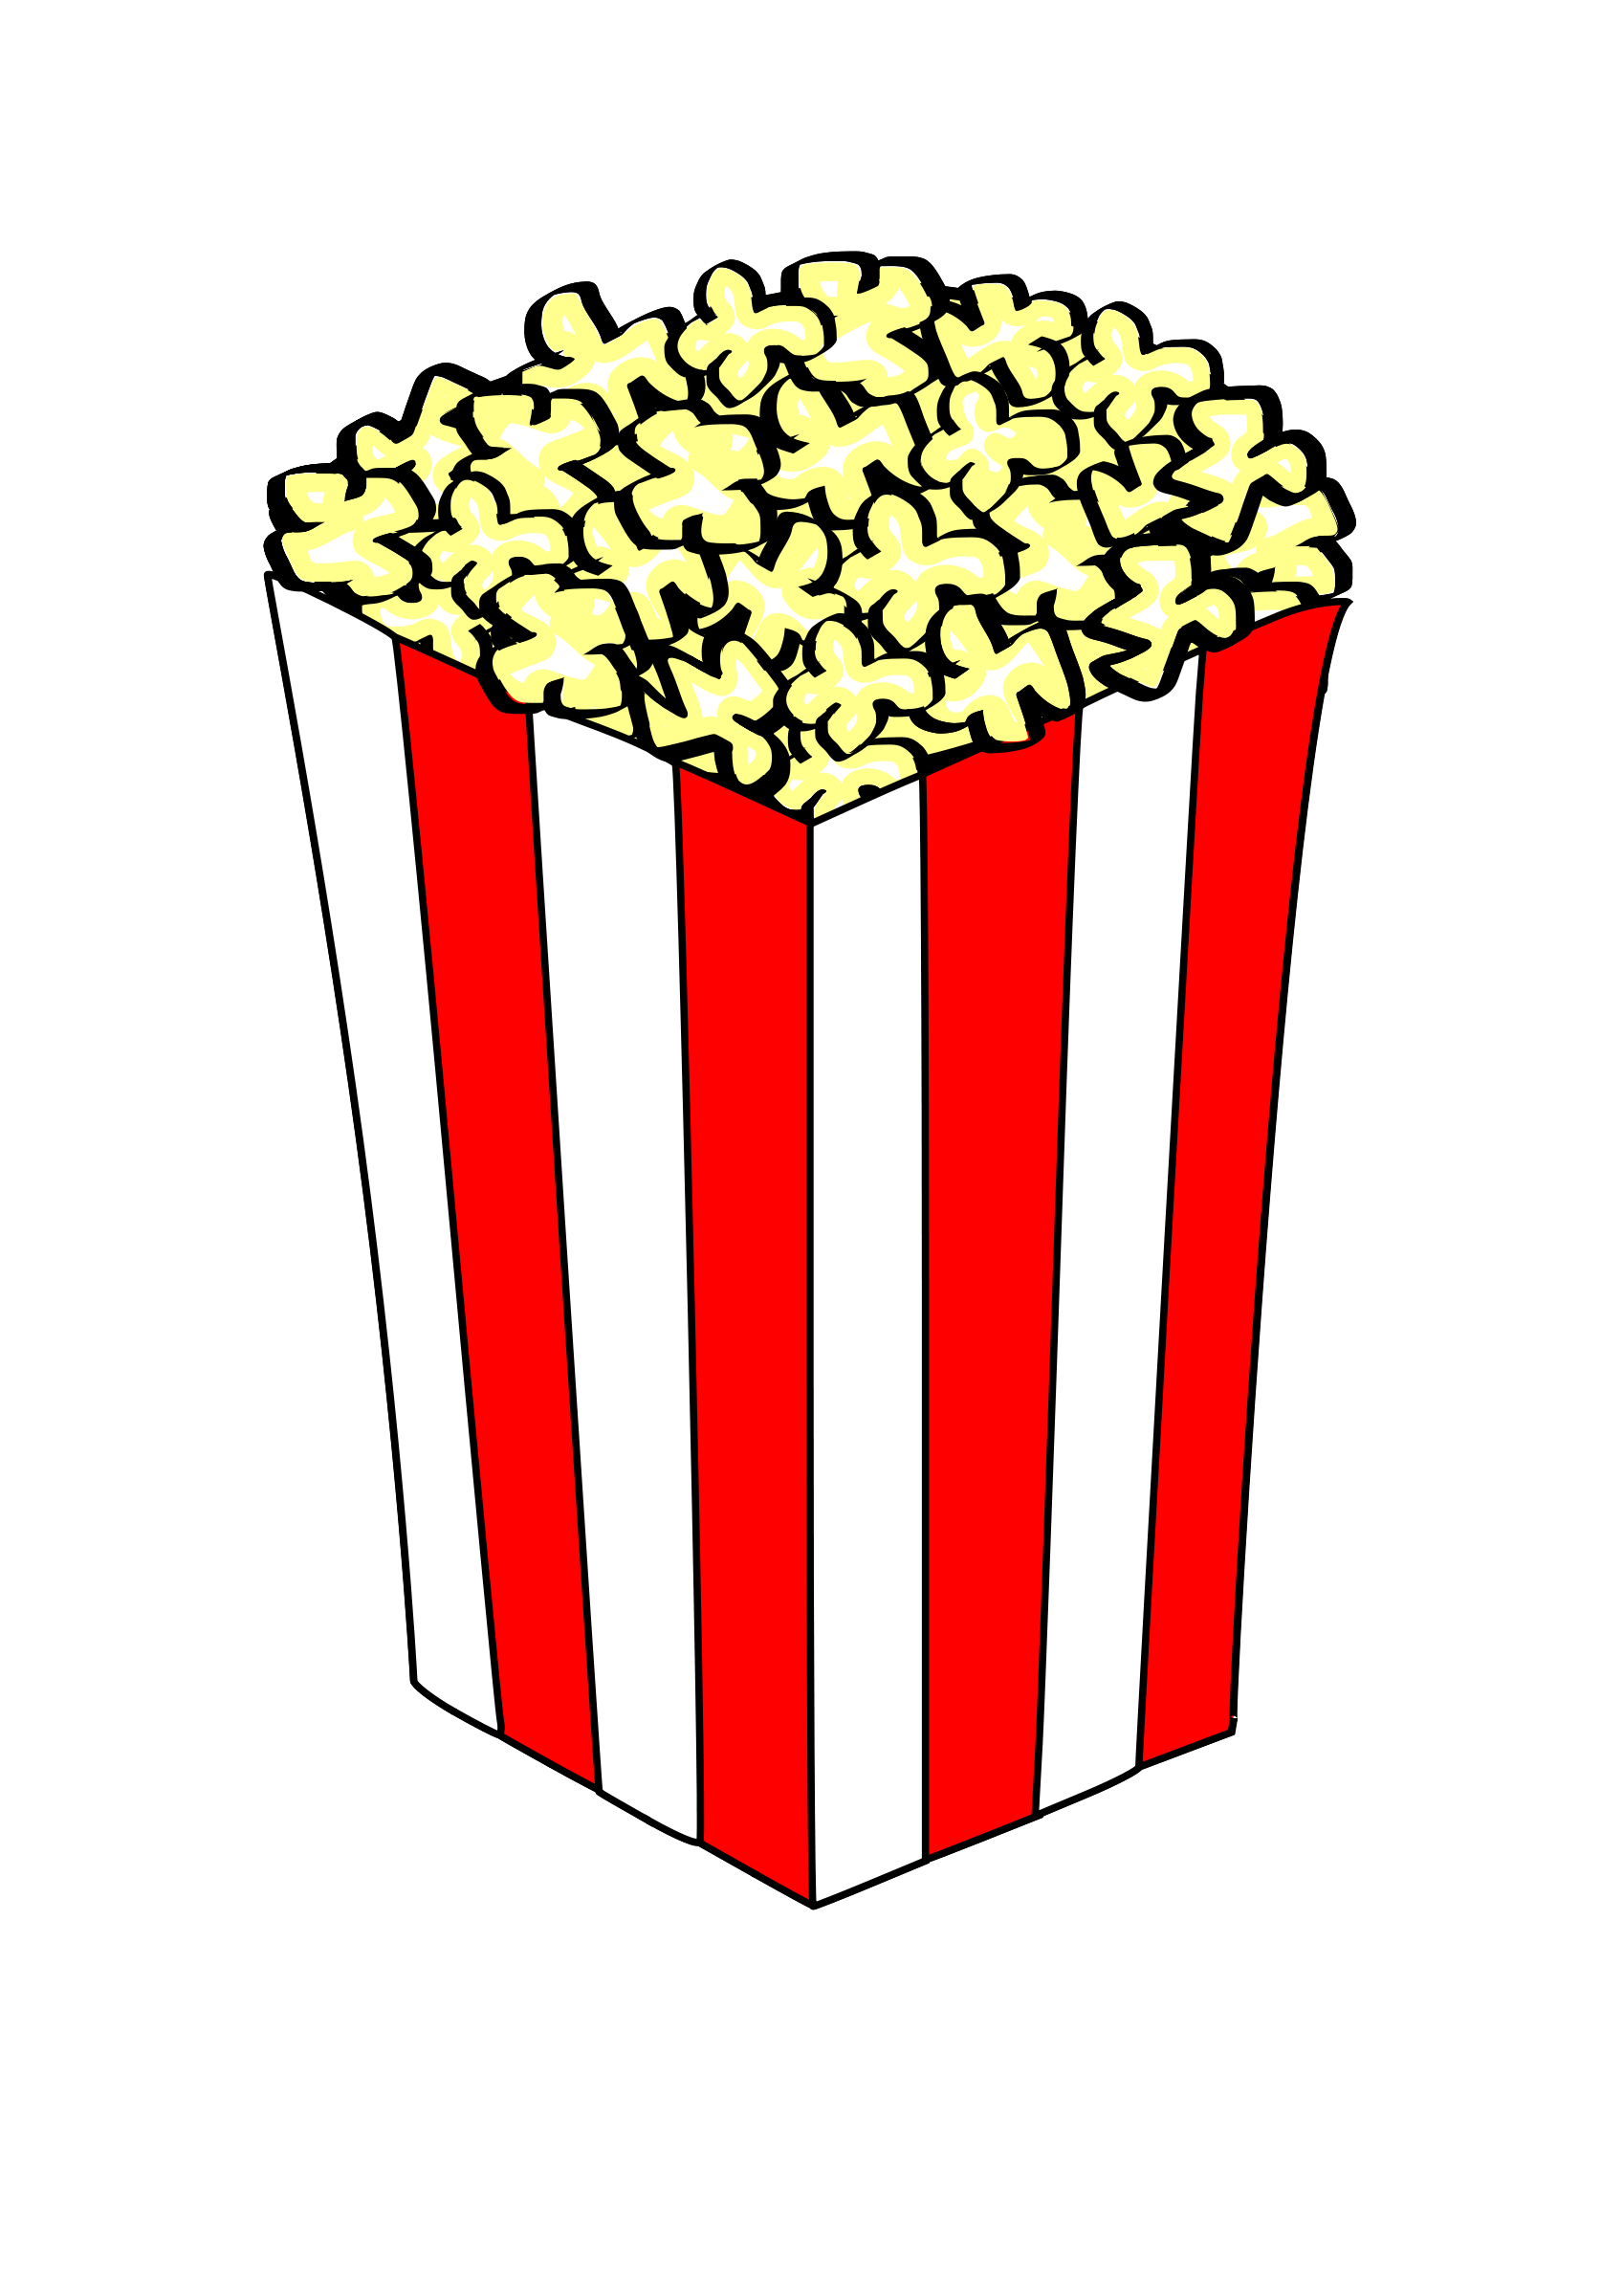 Movie theater popcorn clipart jpg download Movie theater popcorn clipart clipart images gallery for ... jpg download